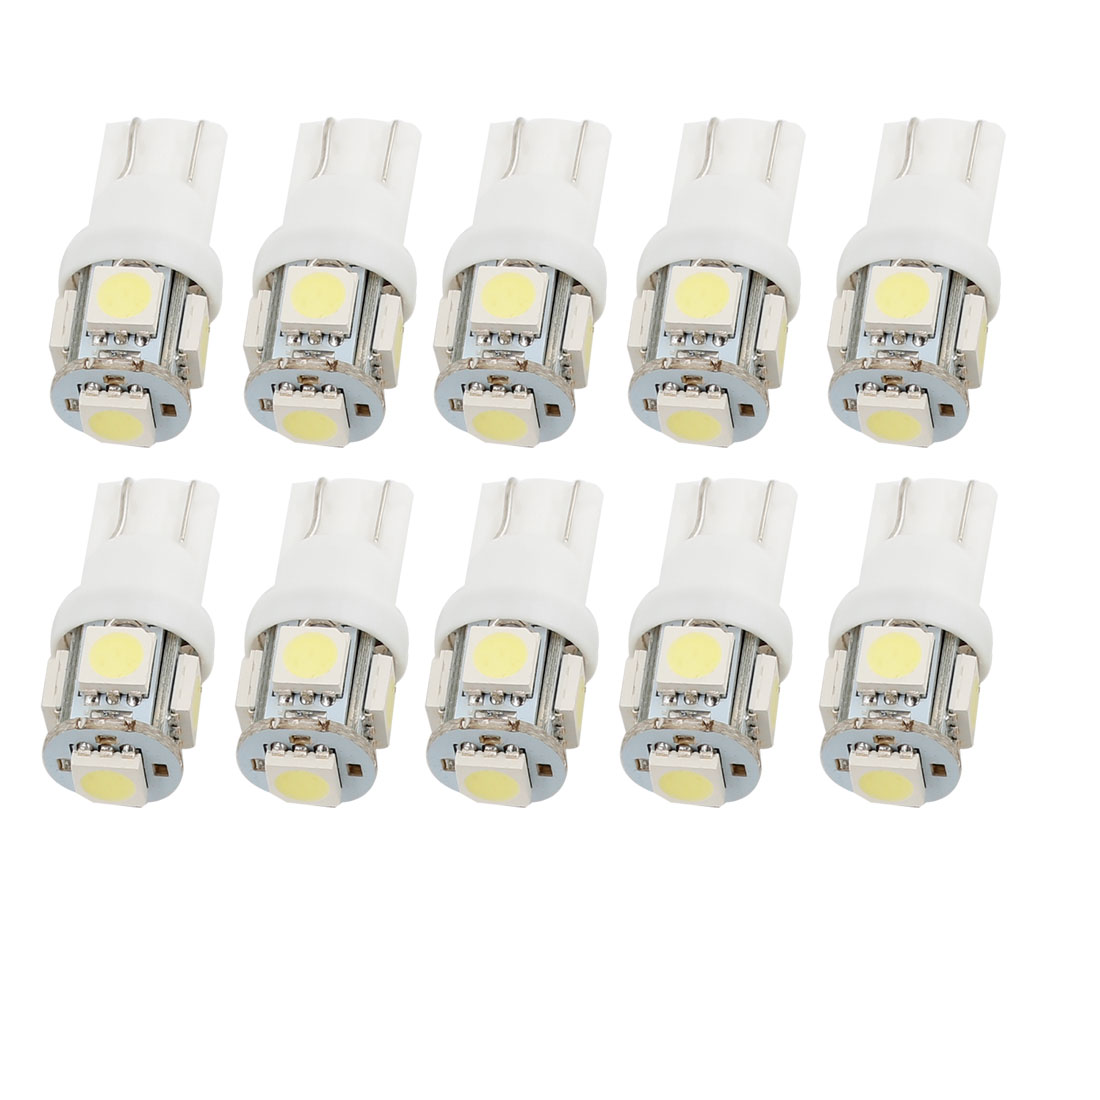 10 Pcs T10 5 SMD 5050 SMD Bulbs White 194 168 W5W LED Wedge Car Light Internal